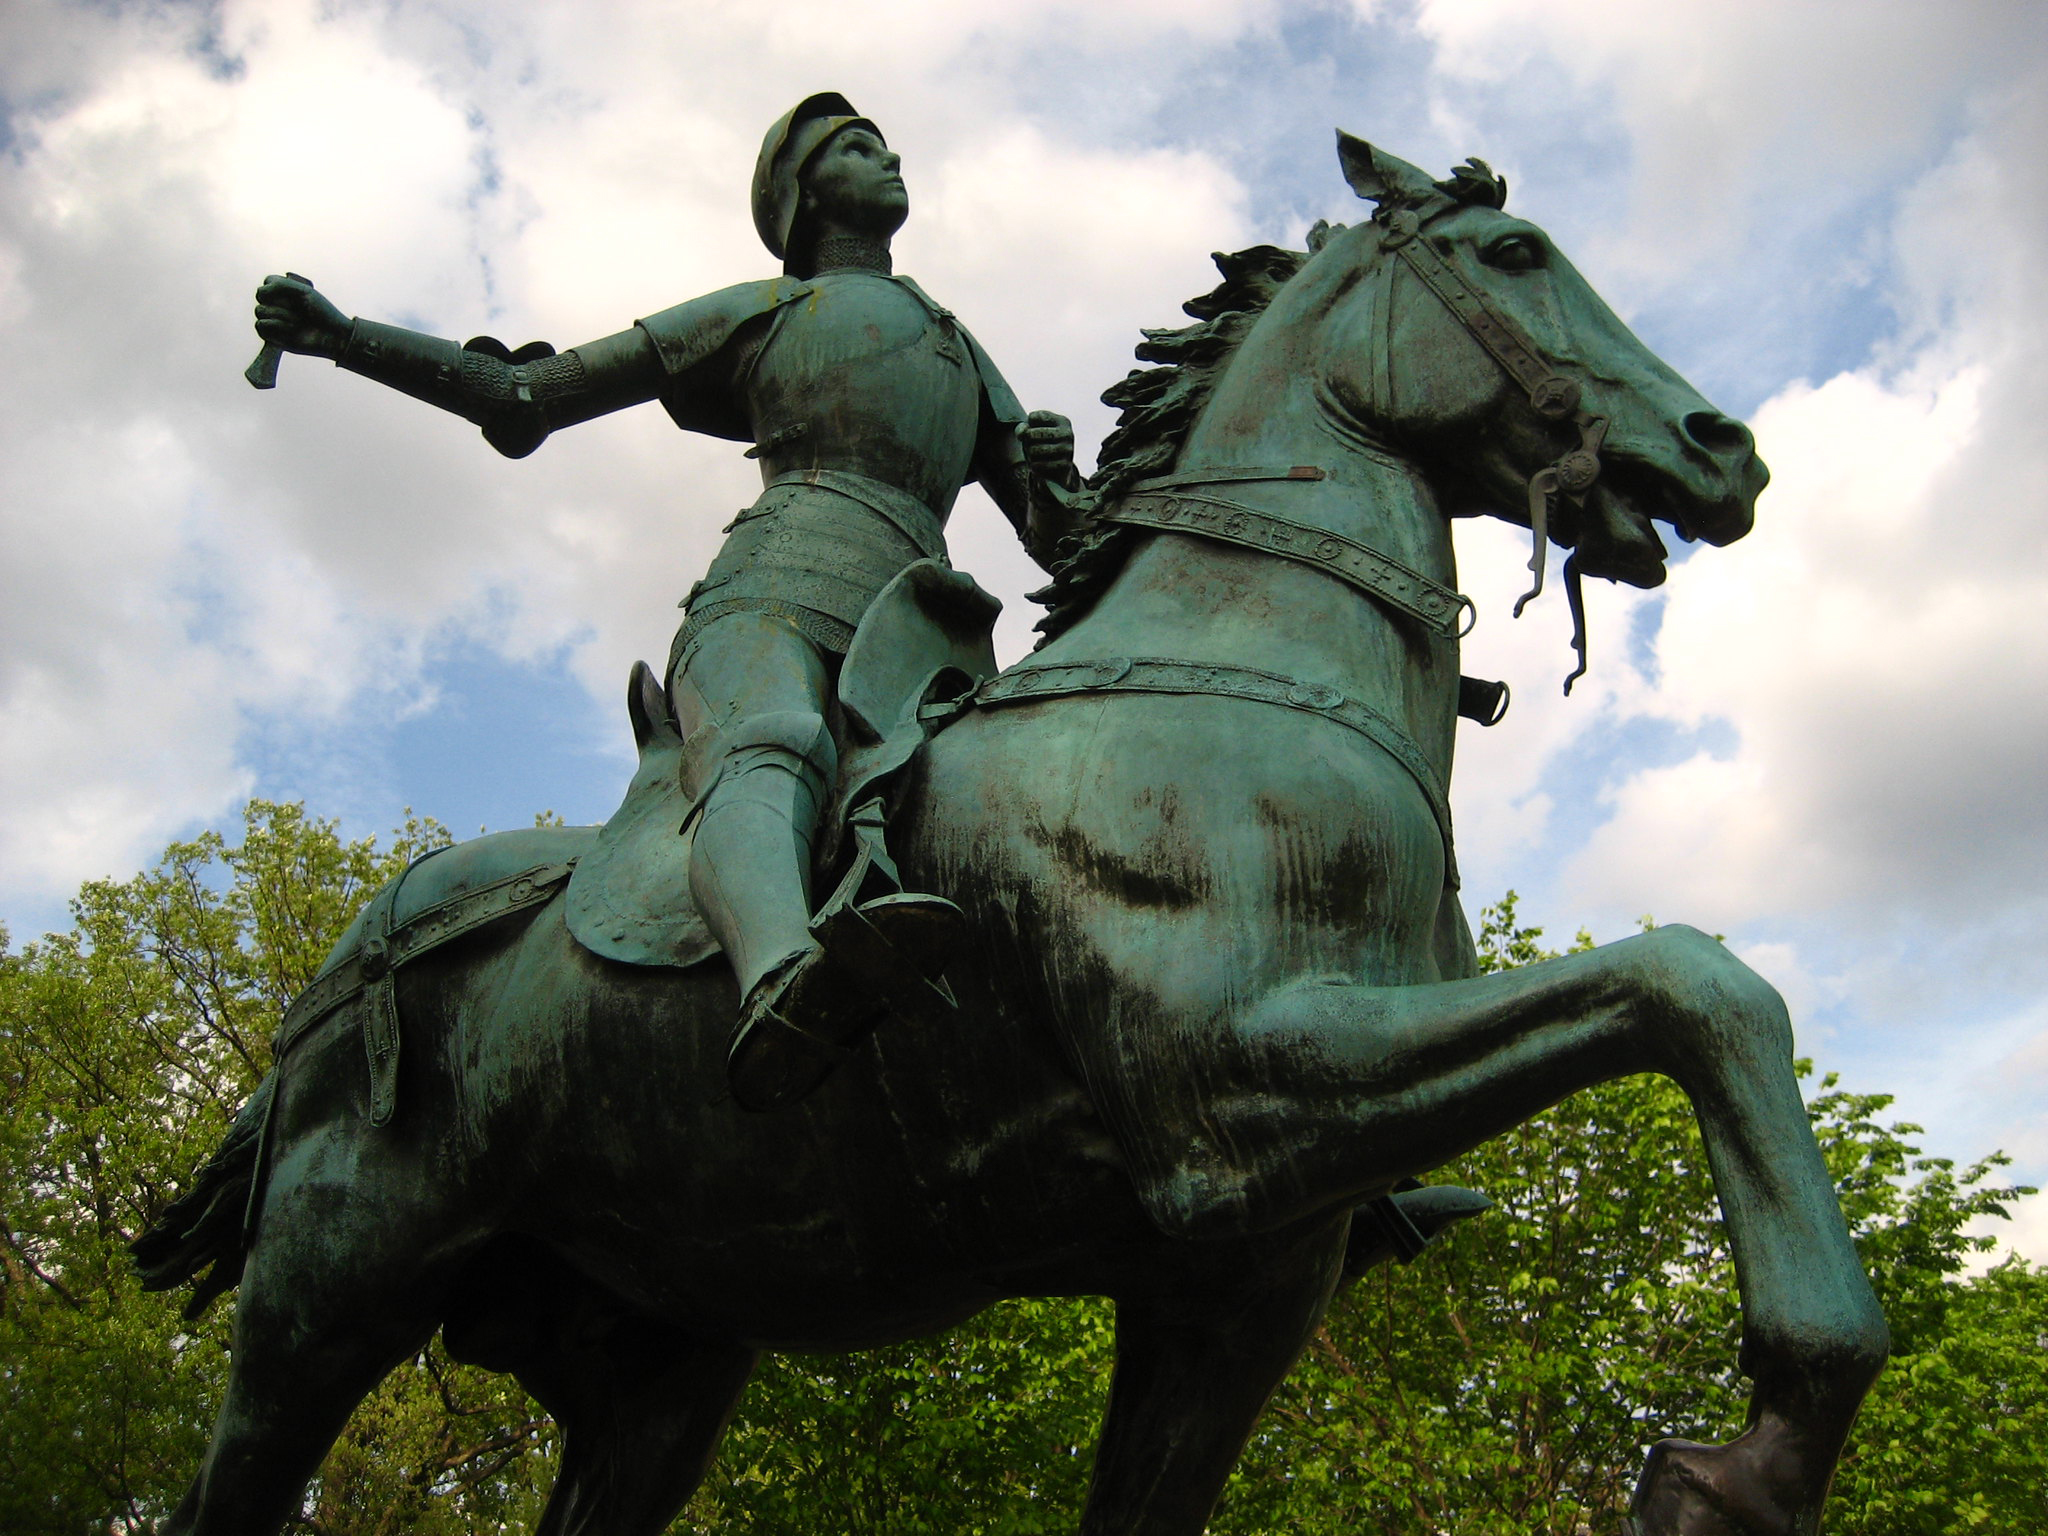 Joan of Arc is depicted in statues around the world, like this one in Washington, DC. Yet students are not always aware that she was a historical, rather than fictional, figure.